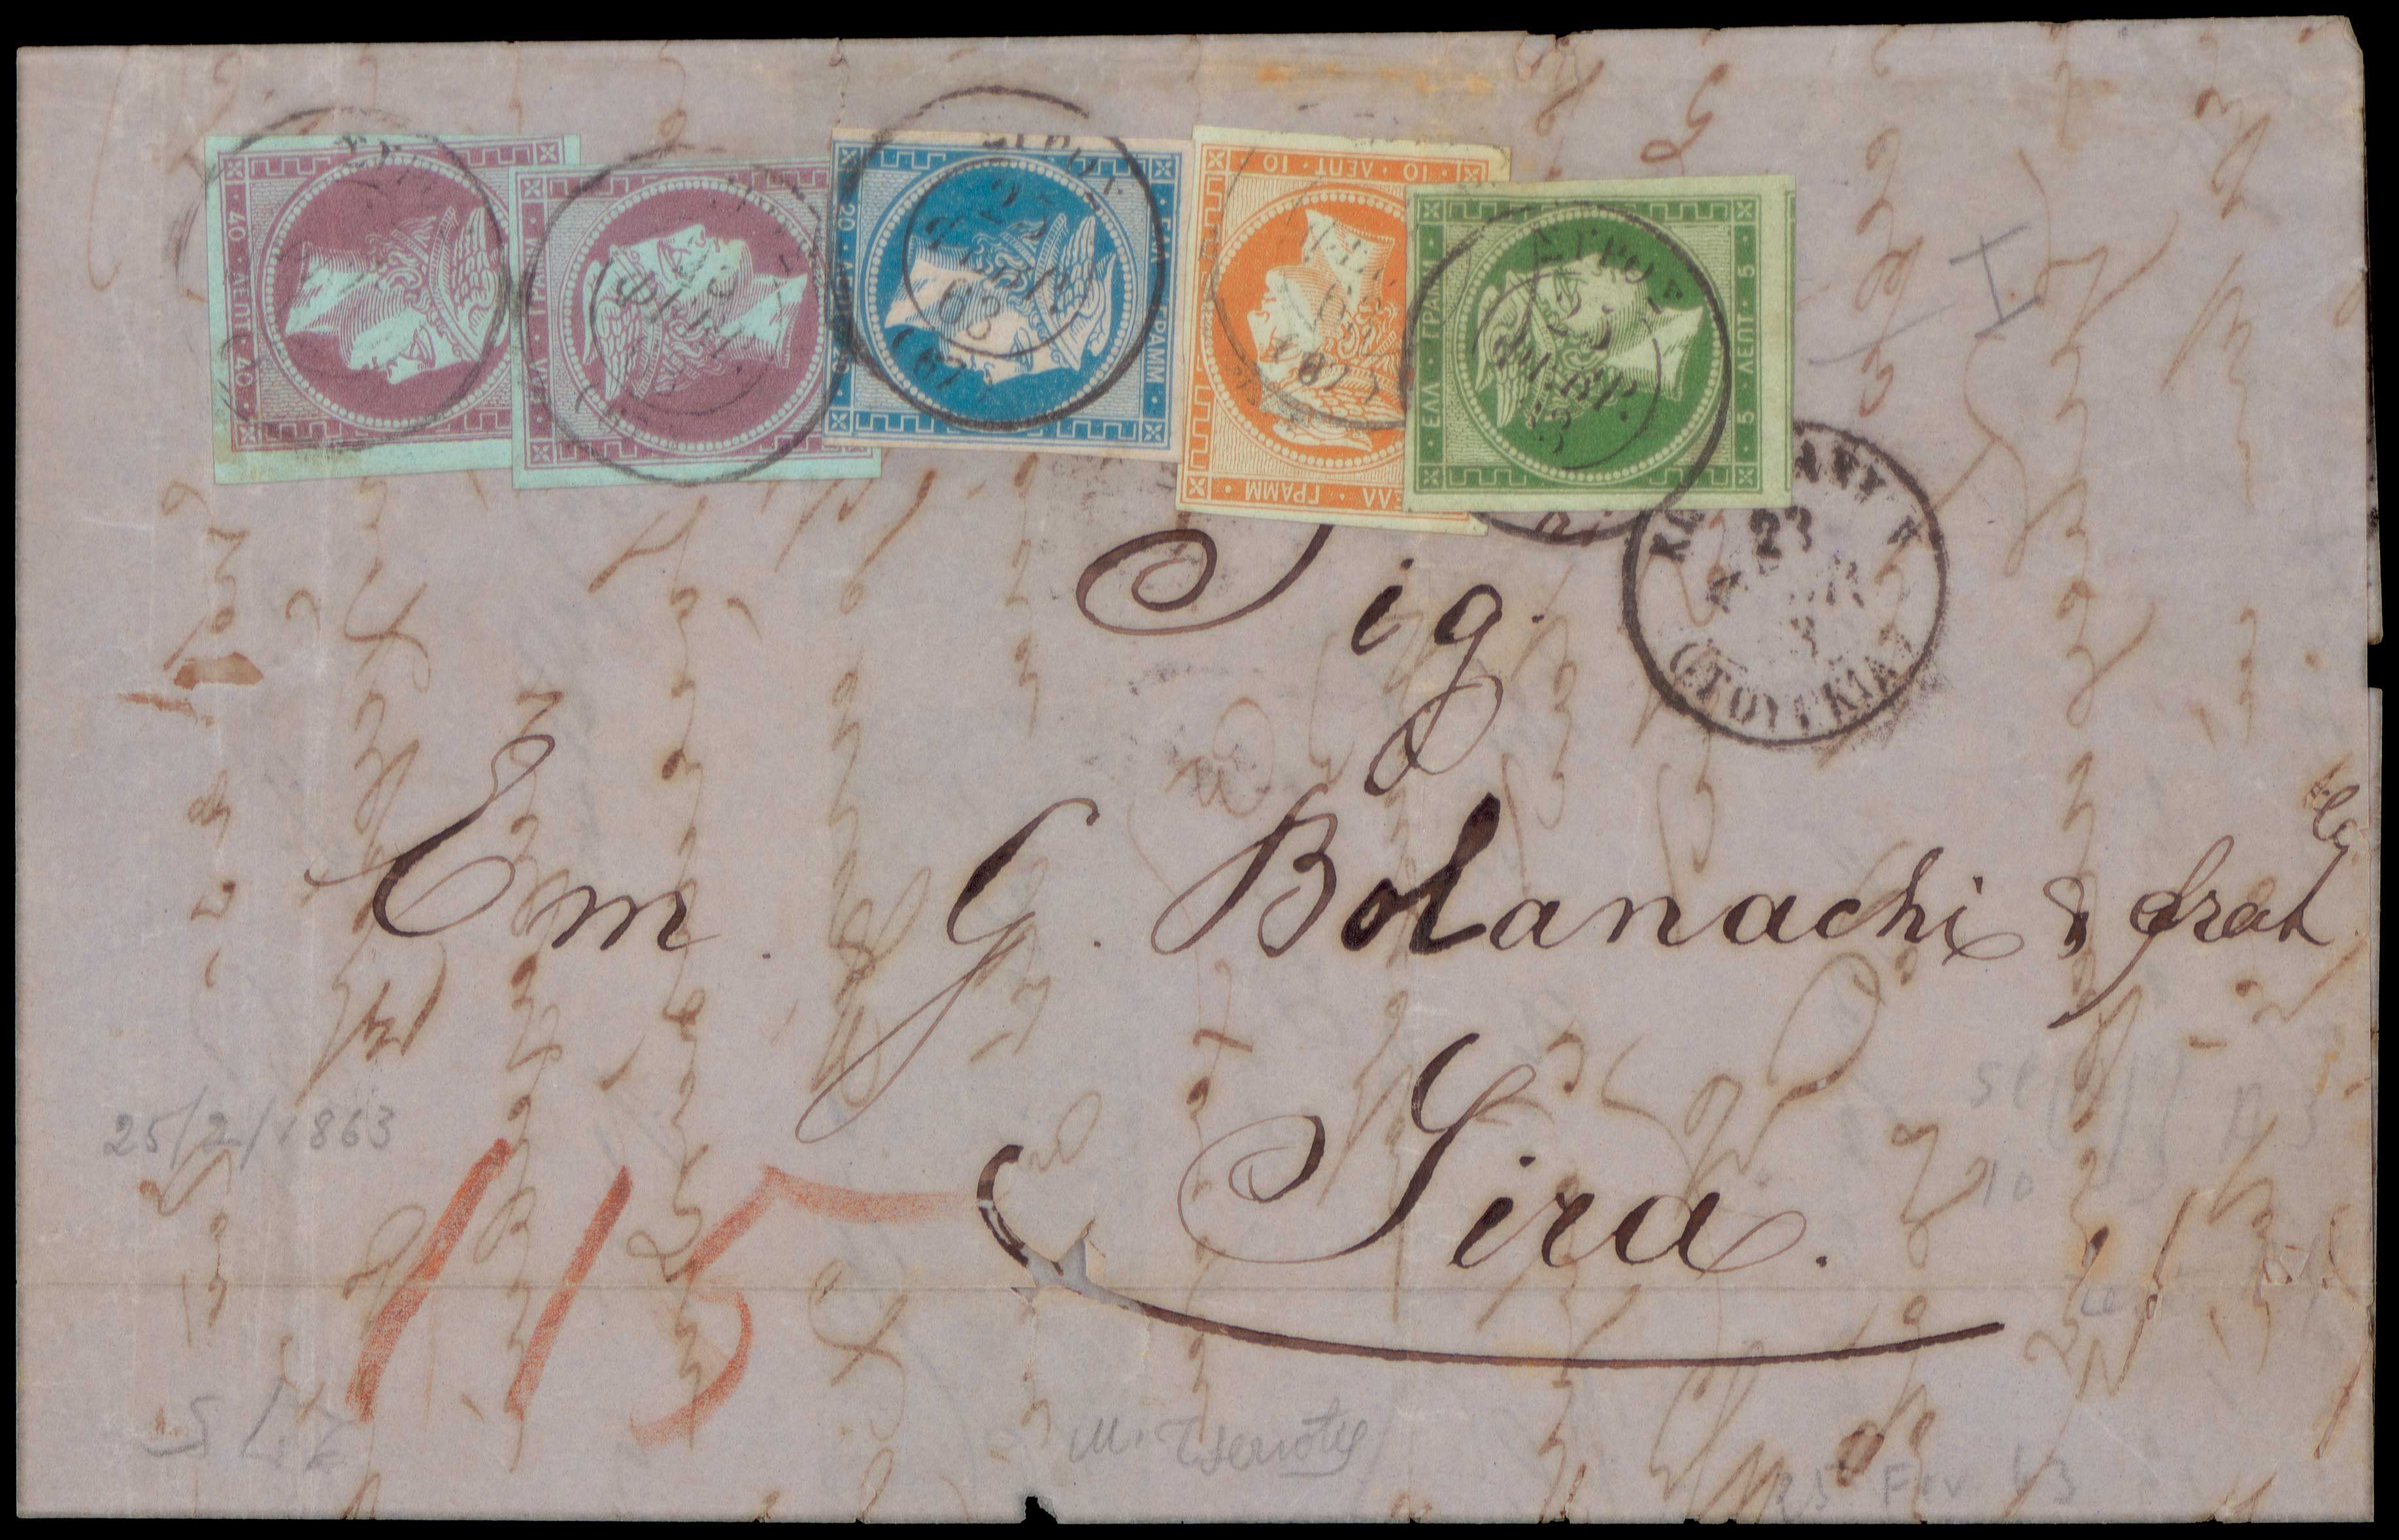 Lot 133 - -  LARGE HERMES HEAD 1862/67 consecutive athens printings -  A. Karamitsos Public & Live Internet Auction 666 Large Hermes Heads Exceptional Stamps from Great Collections